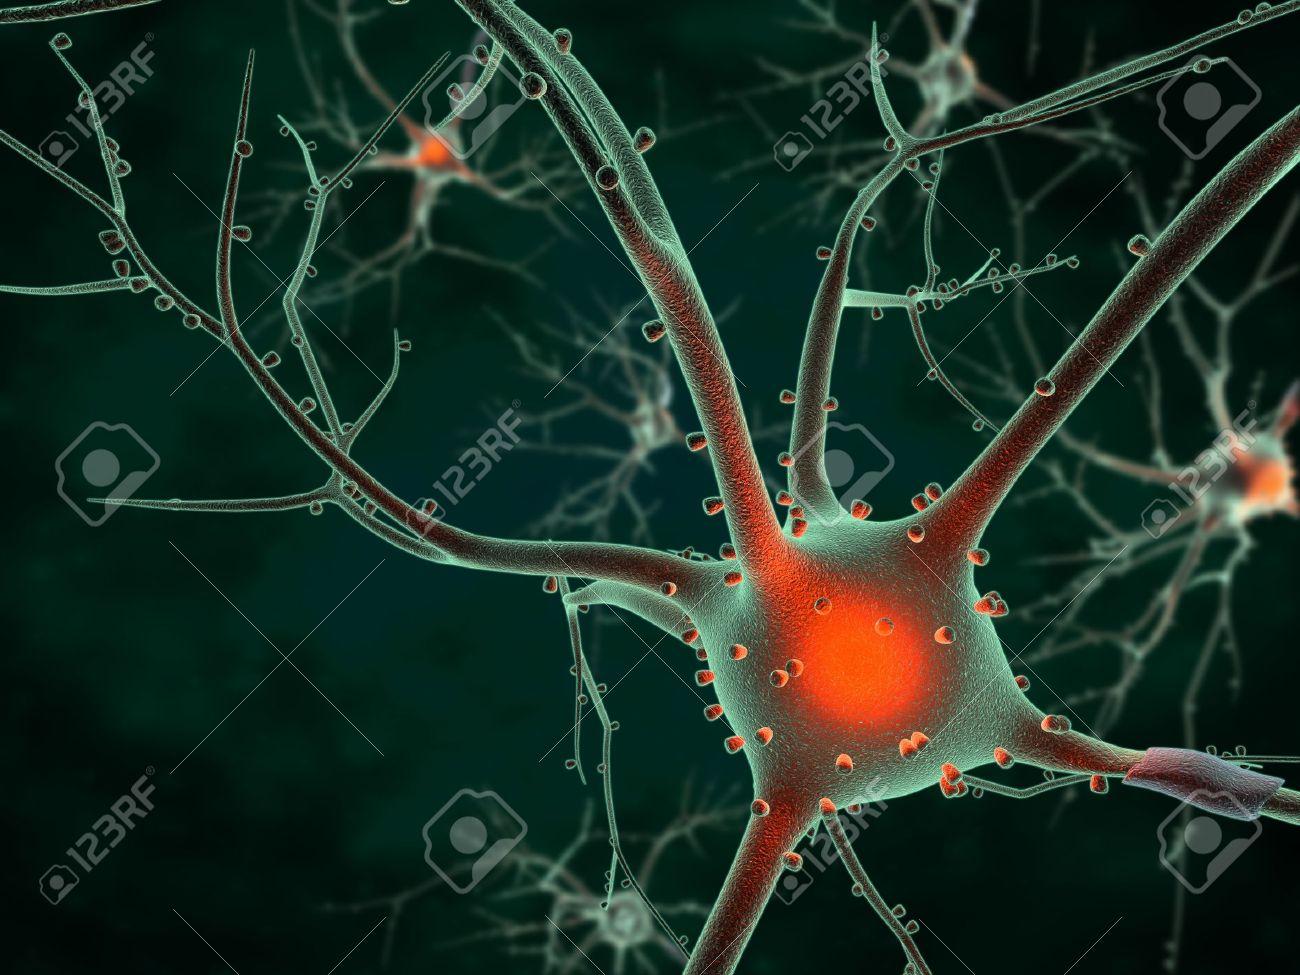 3D rendering of neurons in the brain Stock Photo - 12340035